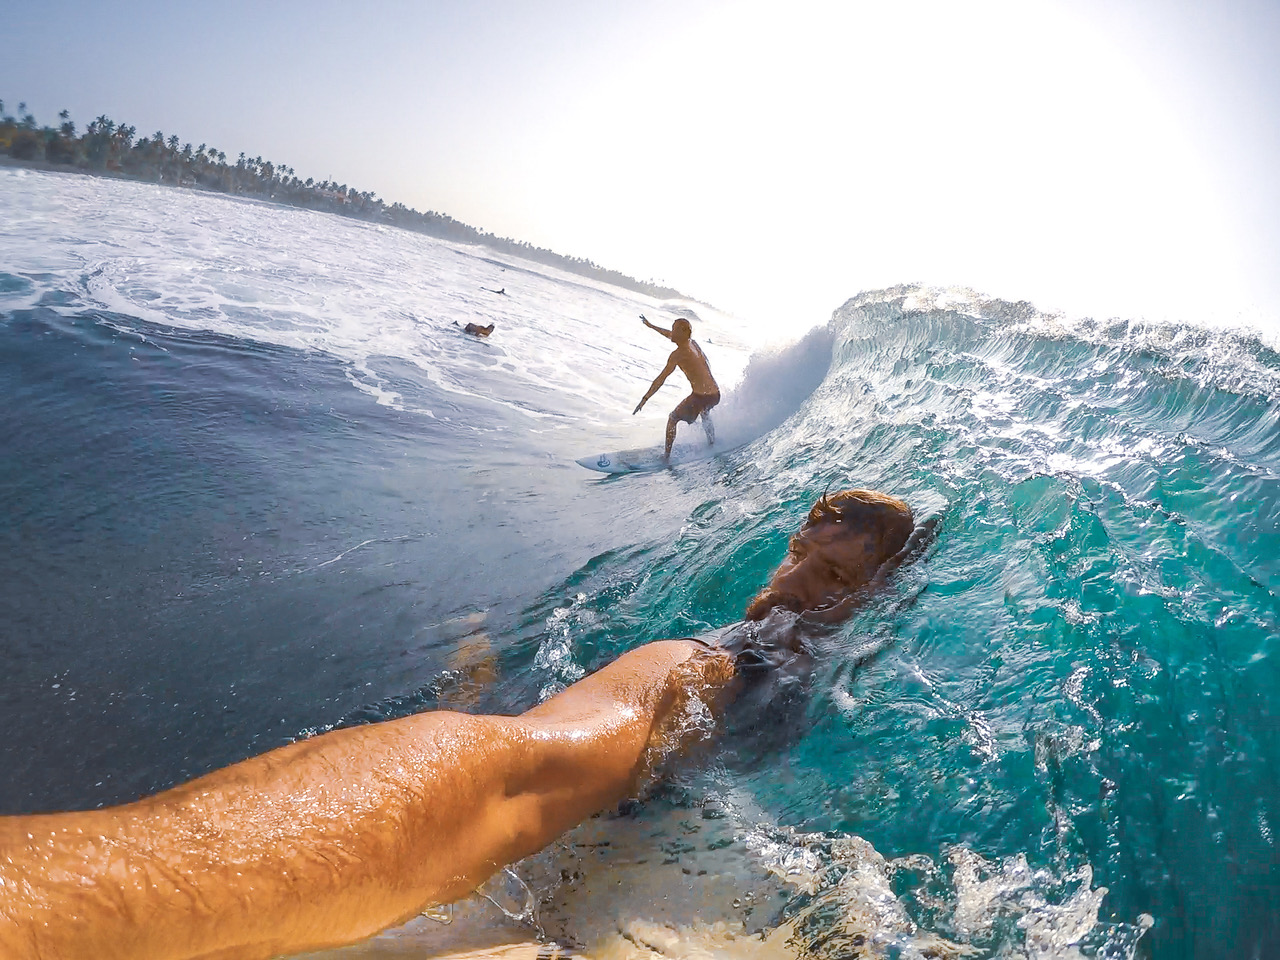 Midigama, The Surfer - The best surfing and yoga retreat in Sri Lanka and South Asia.